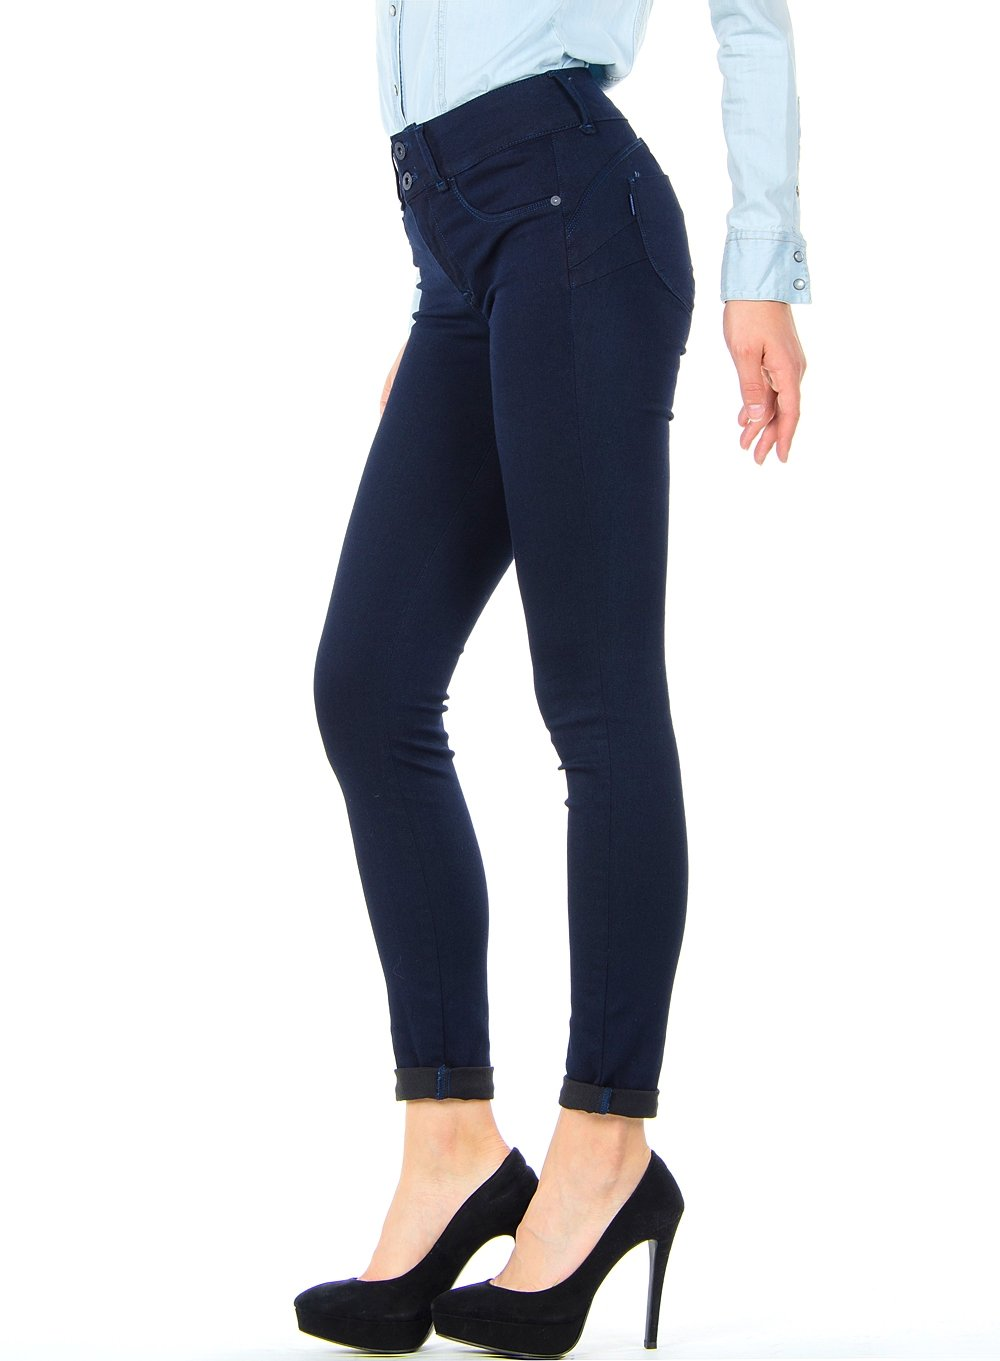 2 Size Skinny 10007884 para Mujer One Up Unwashed Blue Vaqueros Tiffosi Double Azul JEANS np8Iq4gw